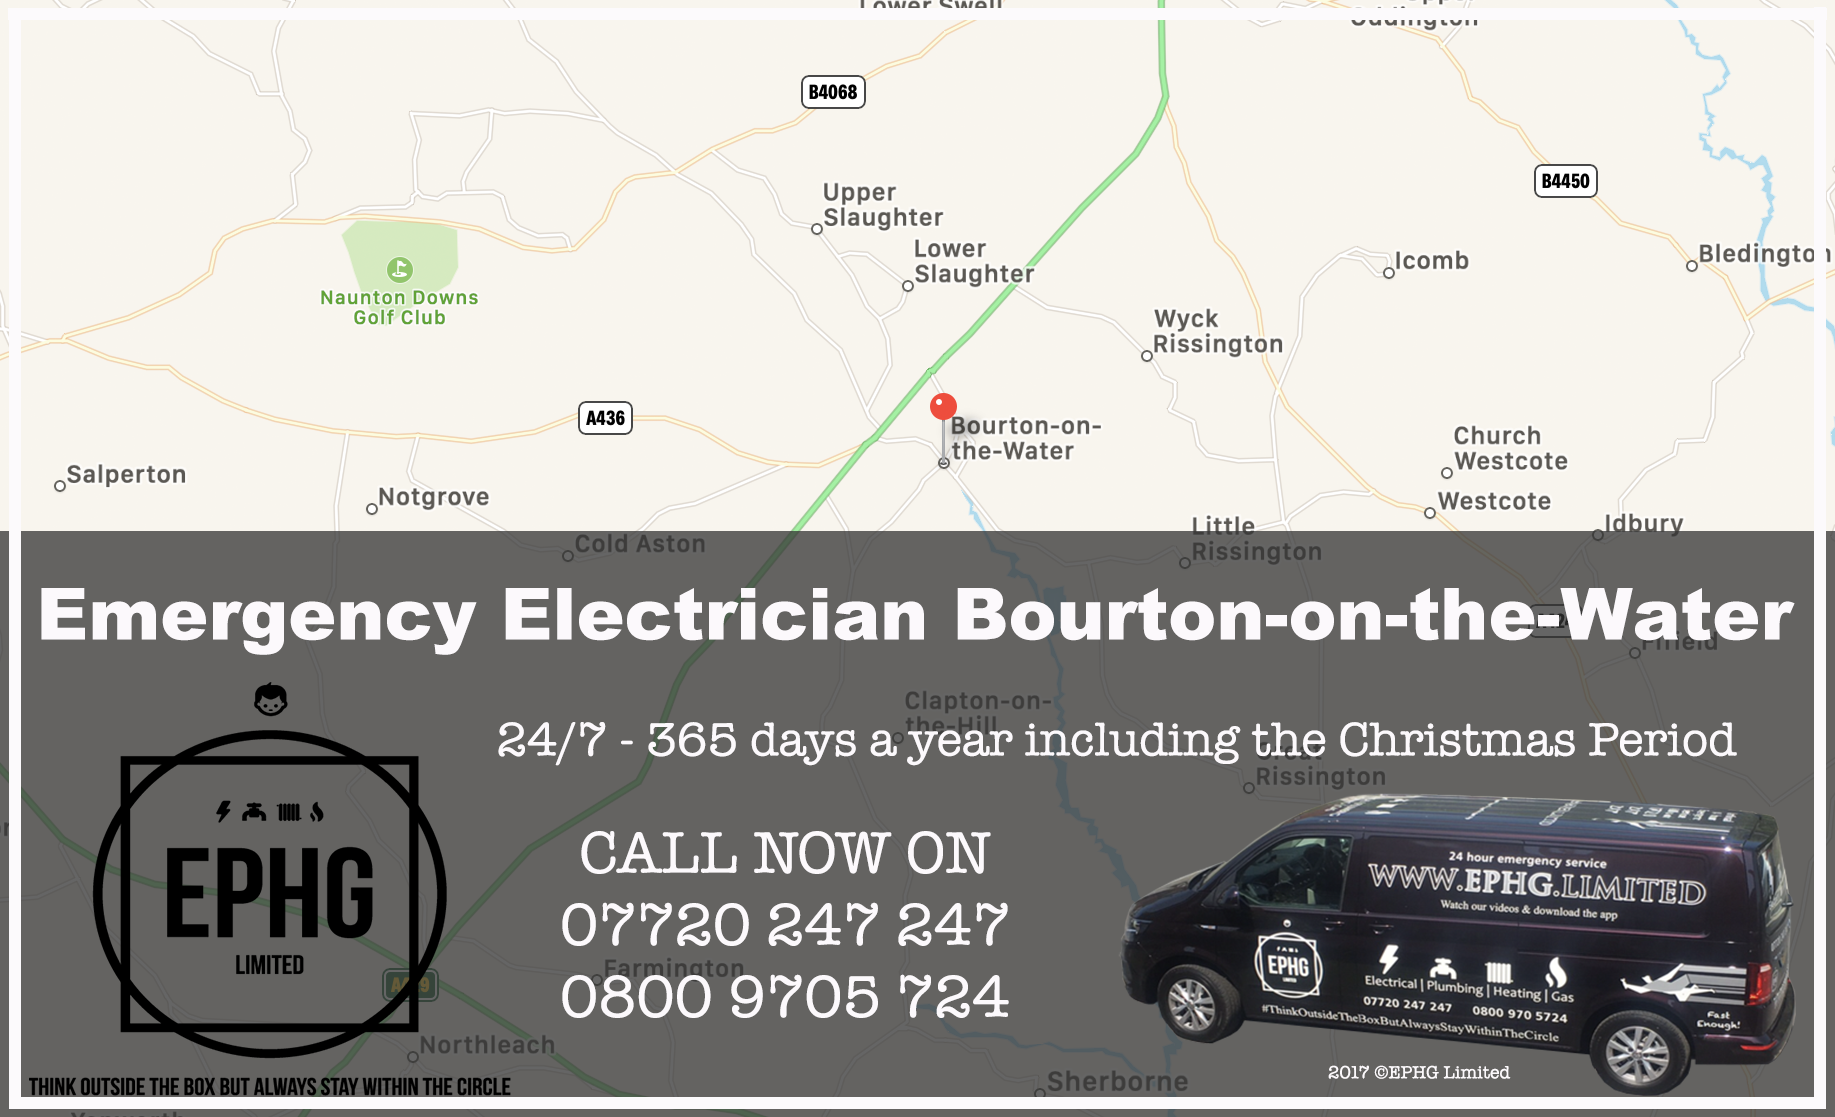 Emergency Electrician Bourton-on-the-Water